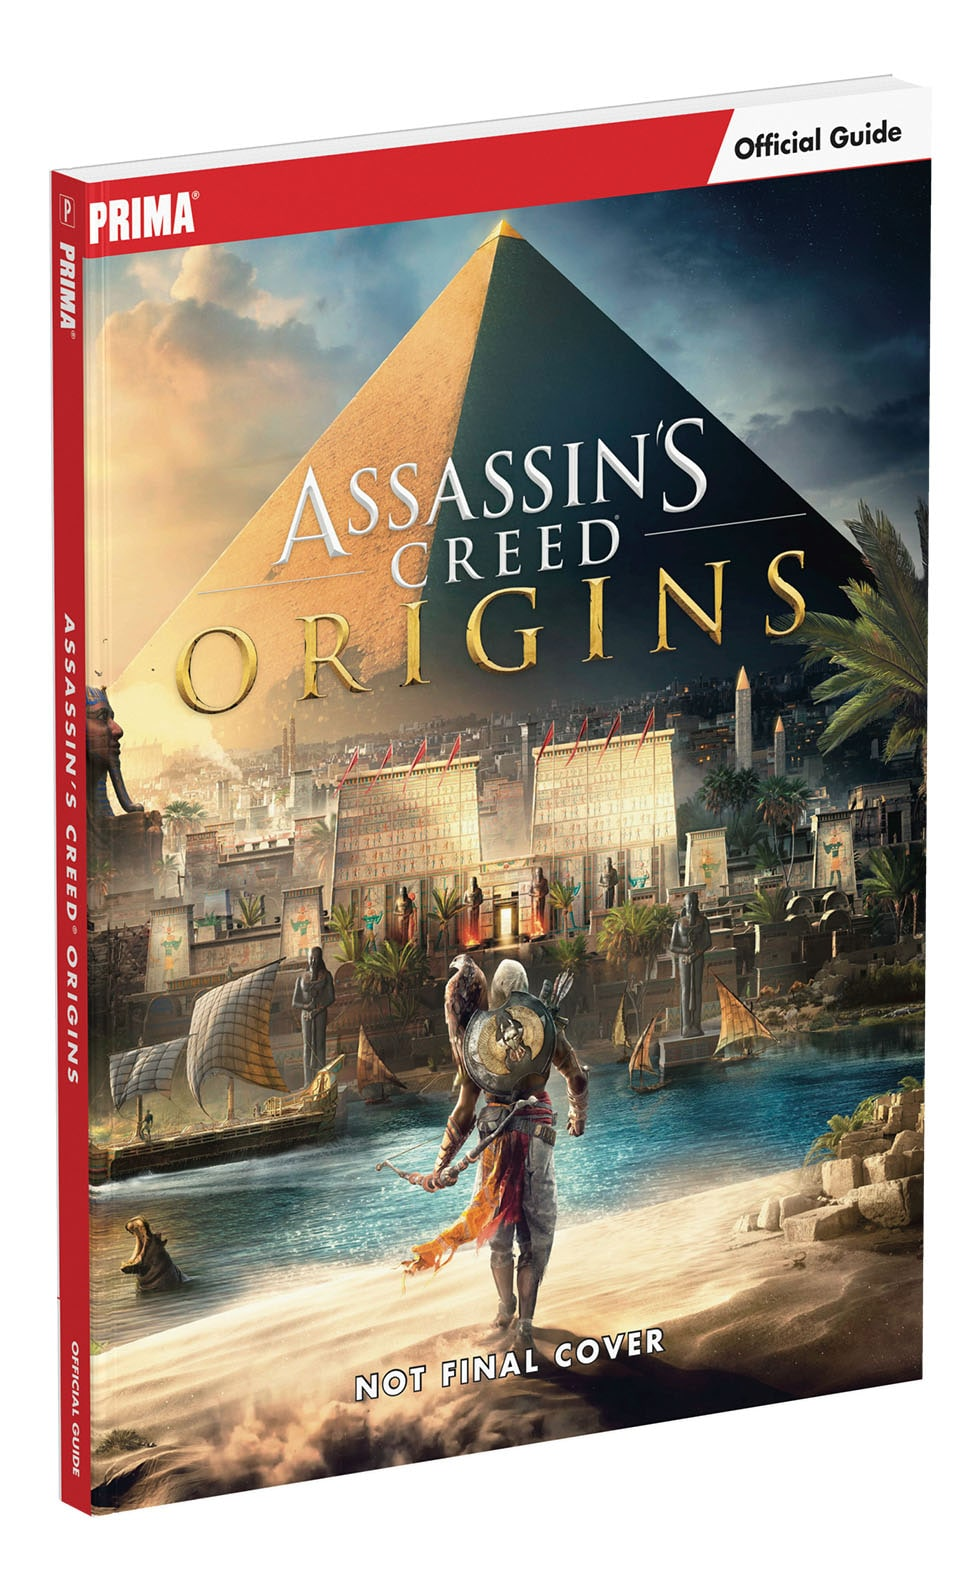 Guía completa de Assassin's Creed Origins